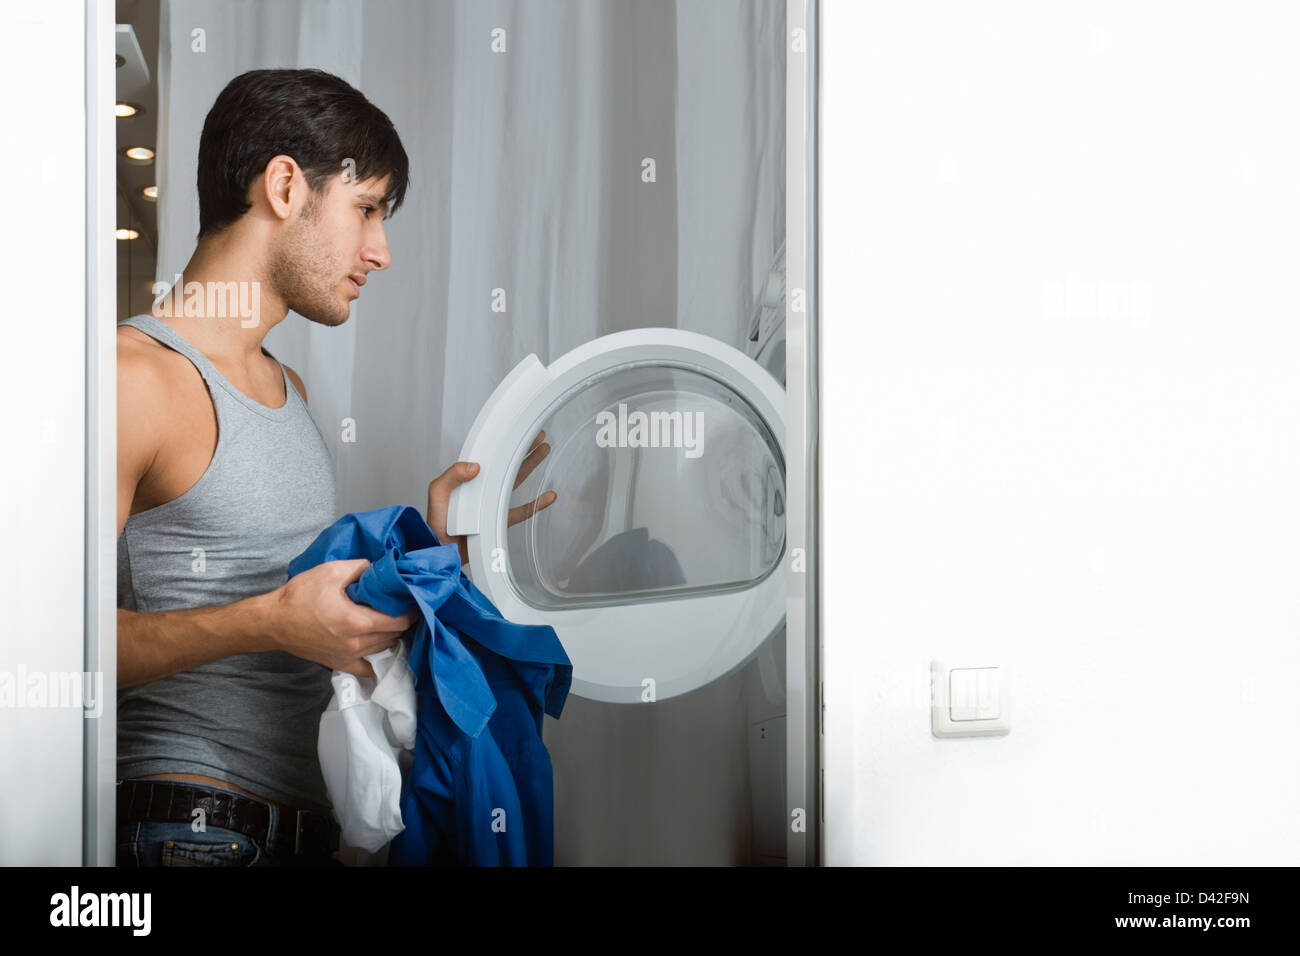 A young man unsure about doing his laundry - Stock Image